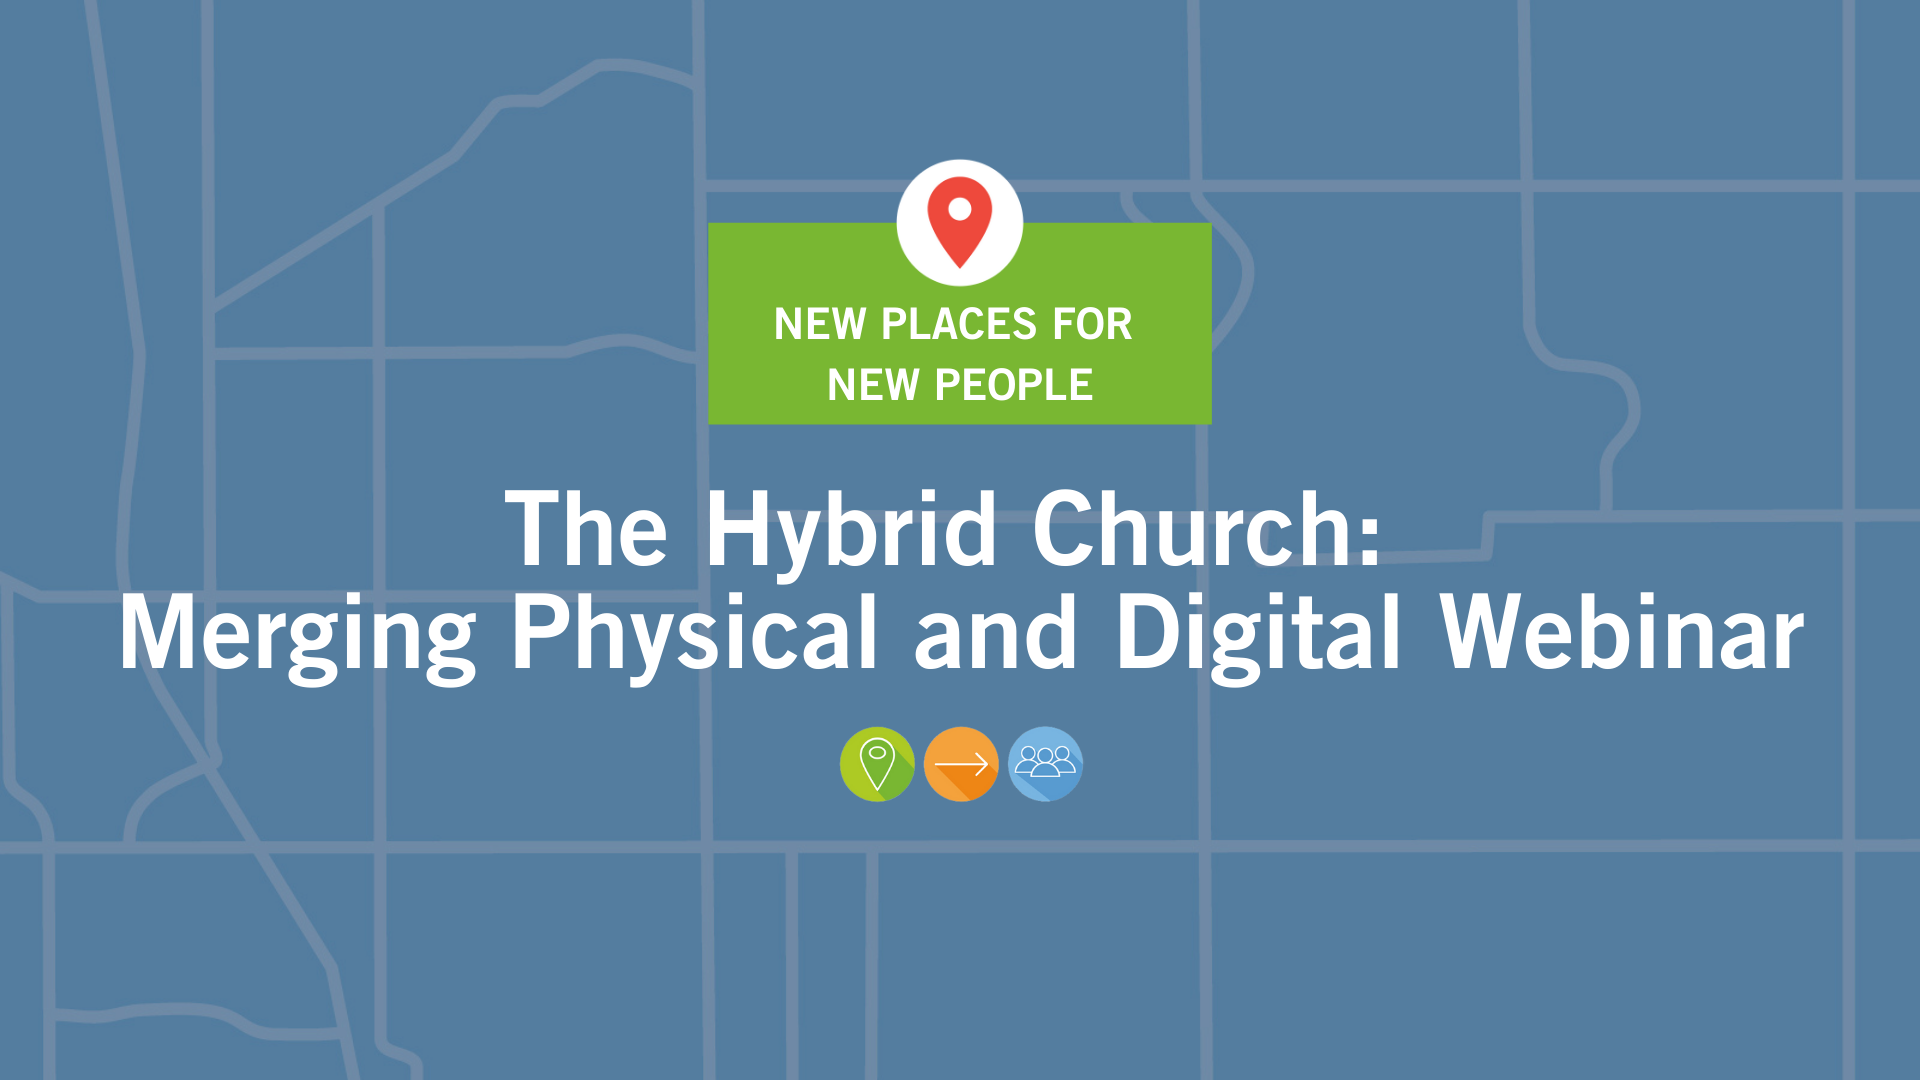 The Hybrid Church: Merging Physical and Digital